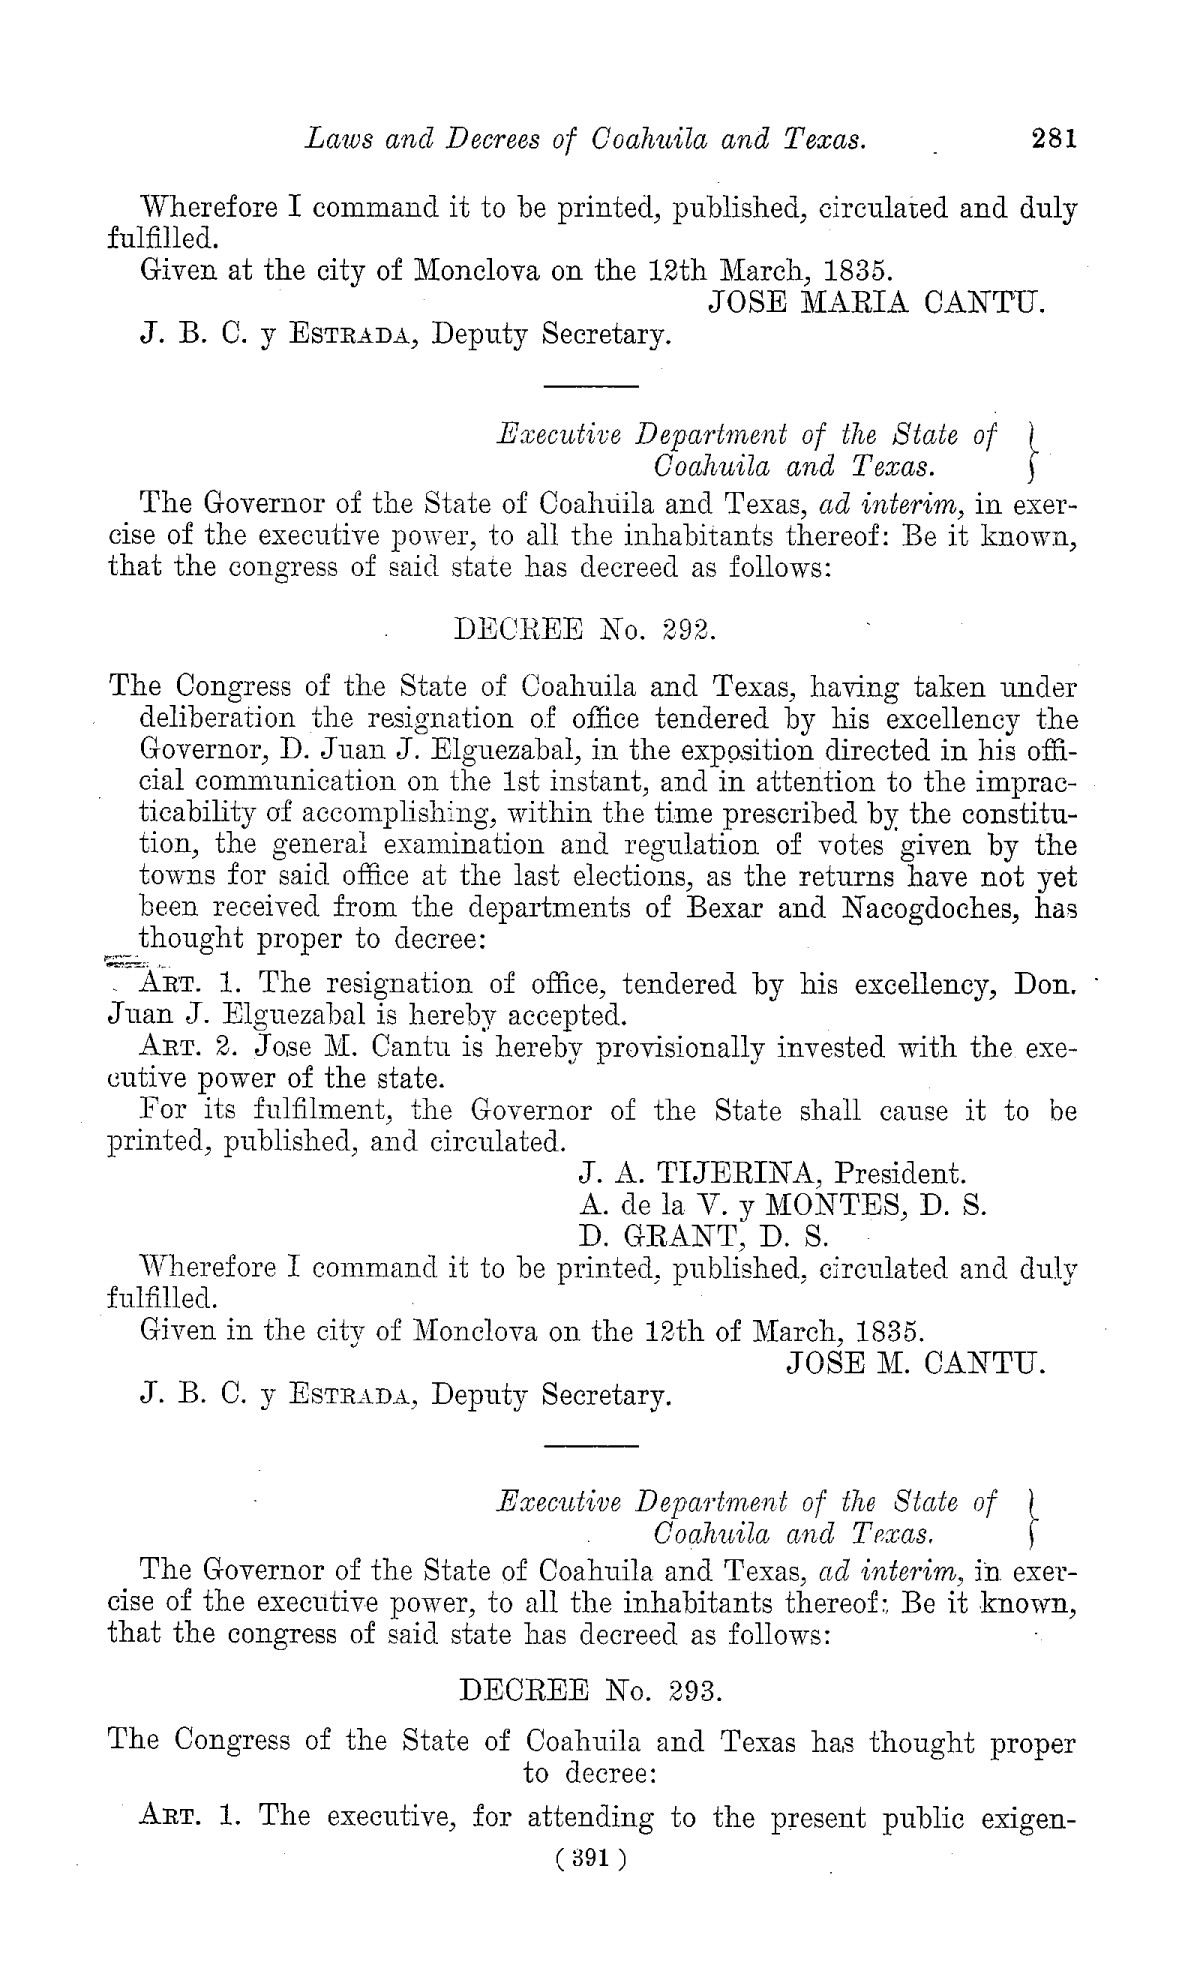 The Laws of Texas, 1822-1897 Volume 1                                                                                                      391